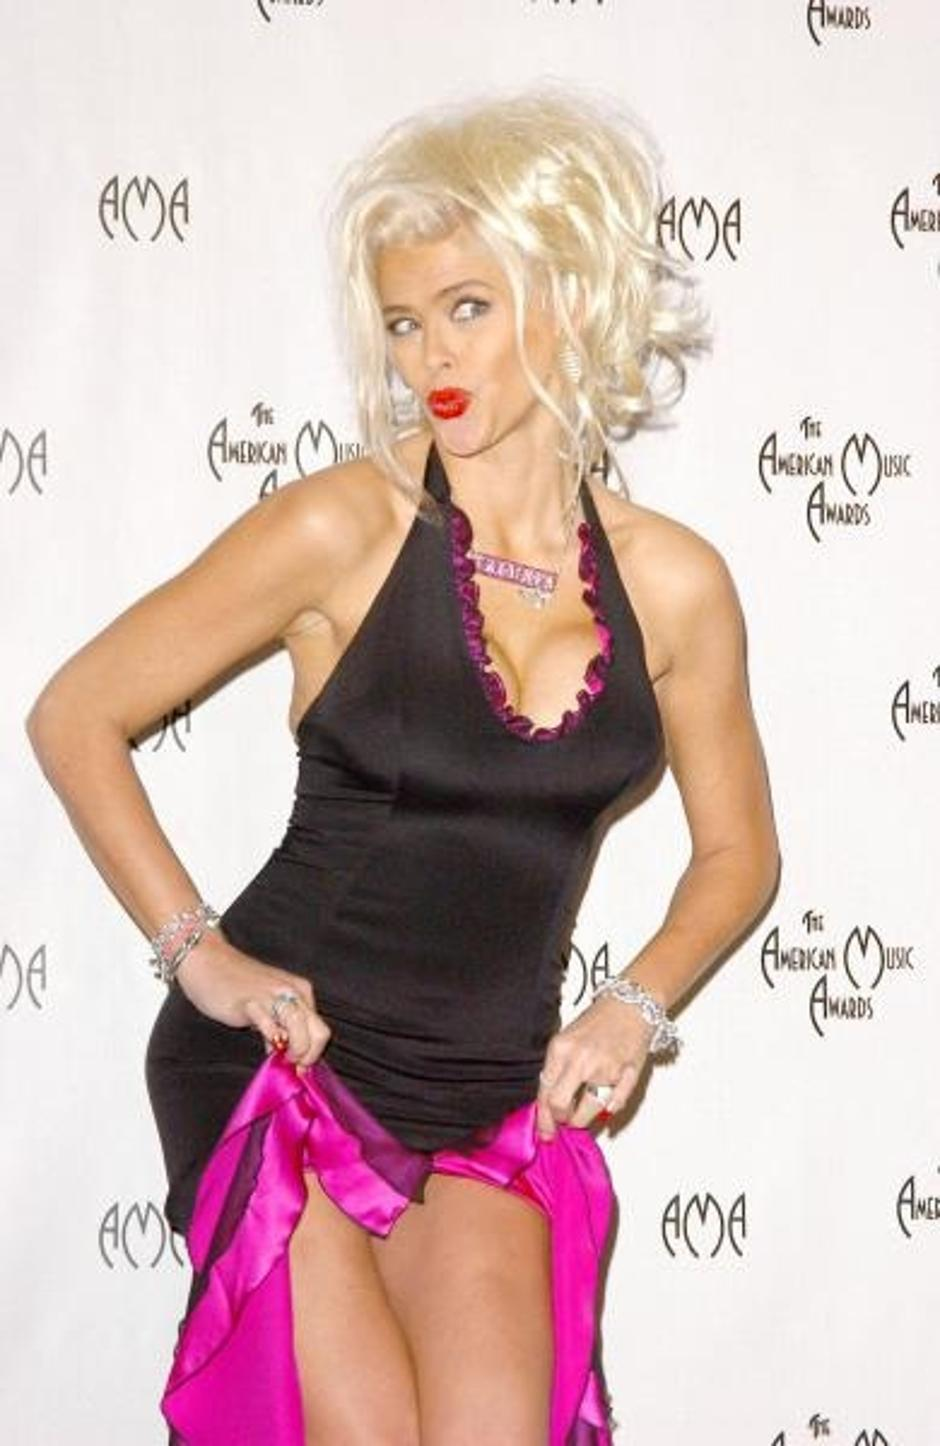 Anna Nicole Smith dies aged 39 | Autor: Lee Roth/Press Association/PIXSELL